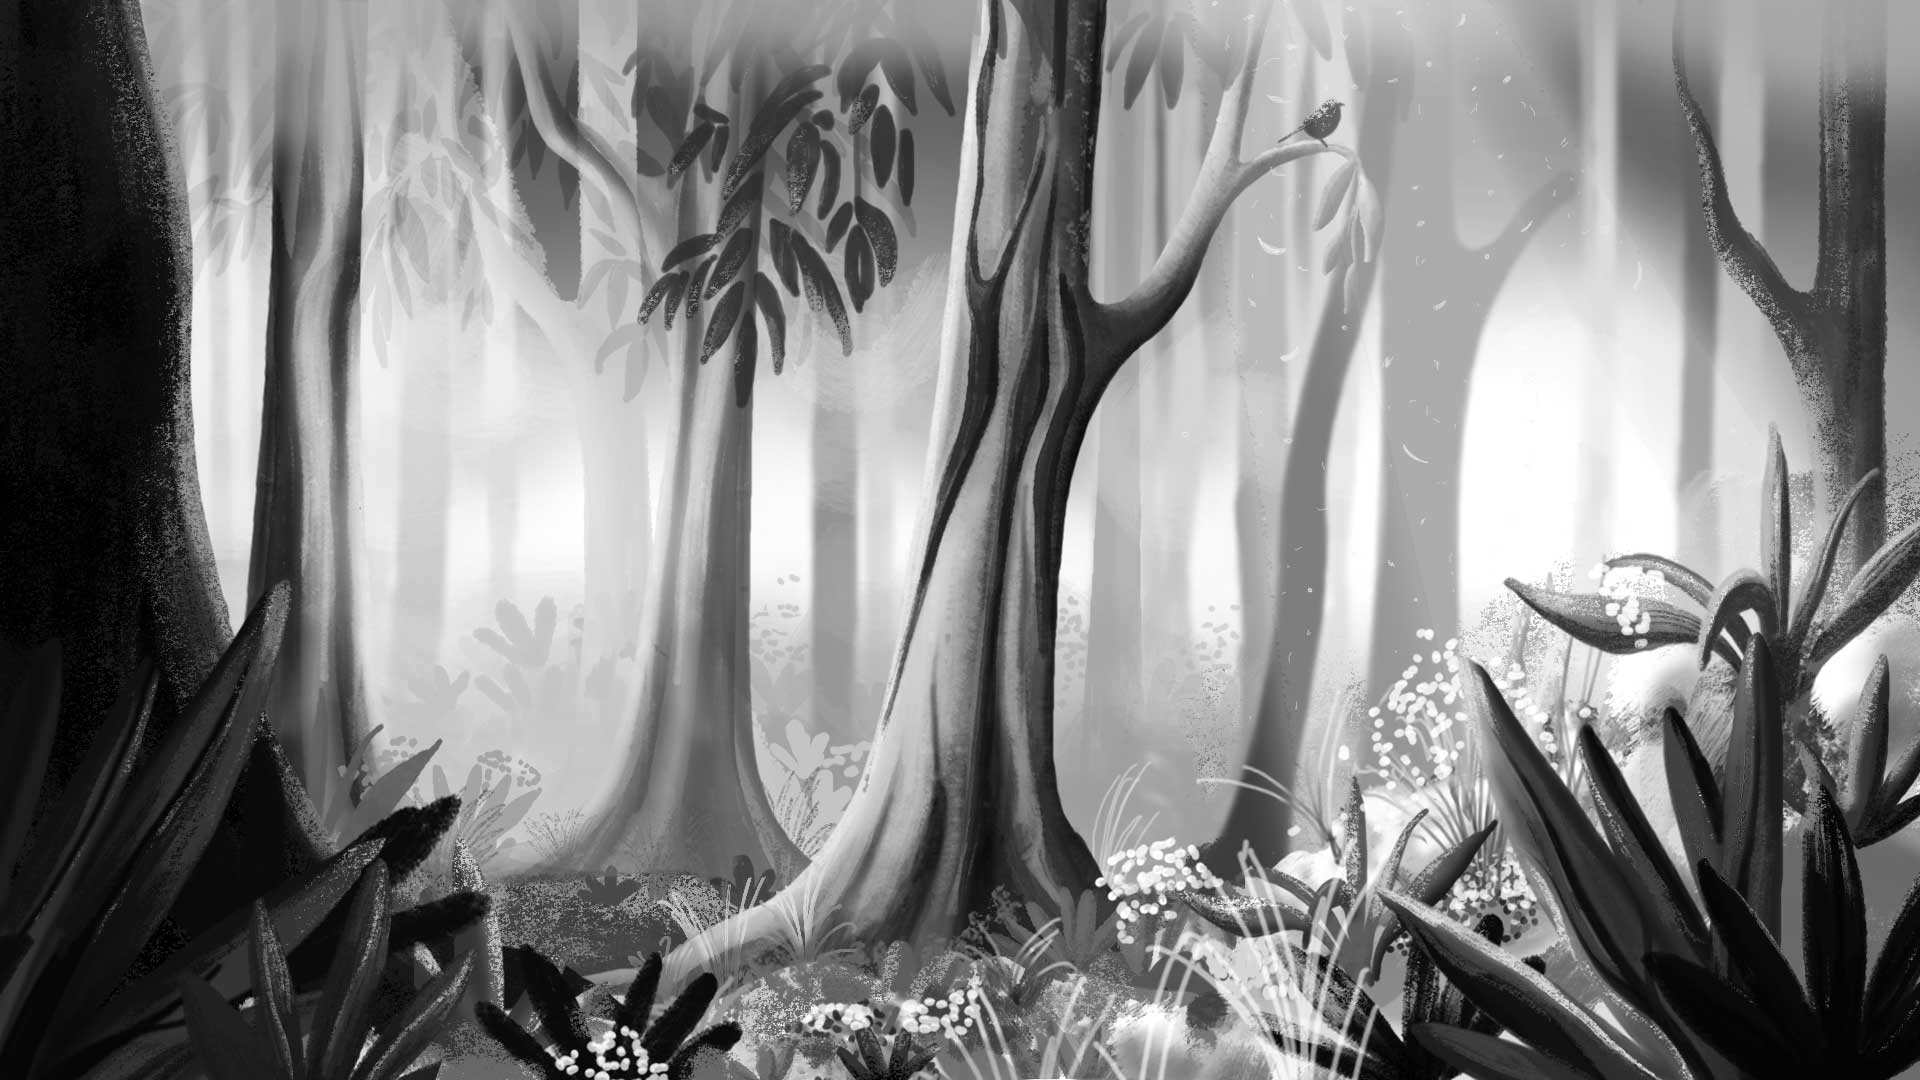 Illustration of a wooded forest in black and white